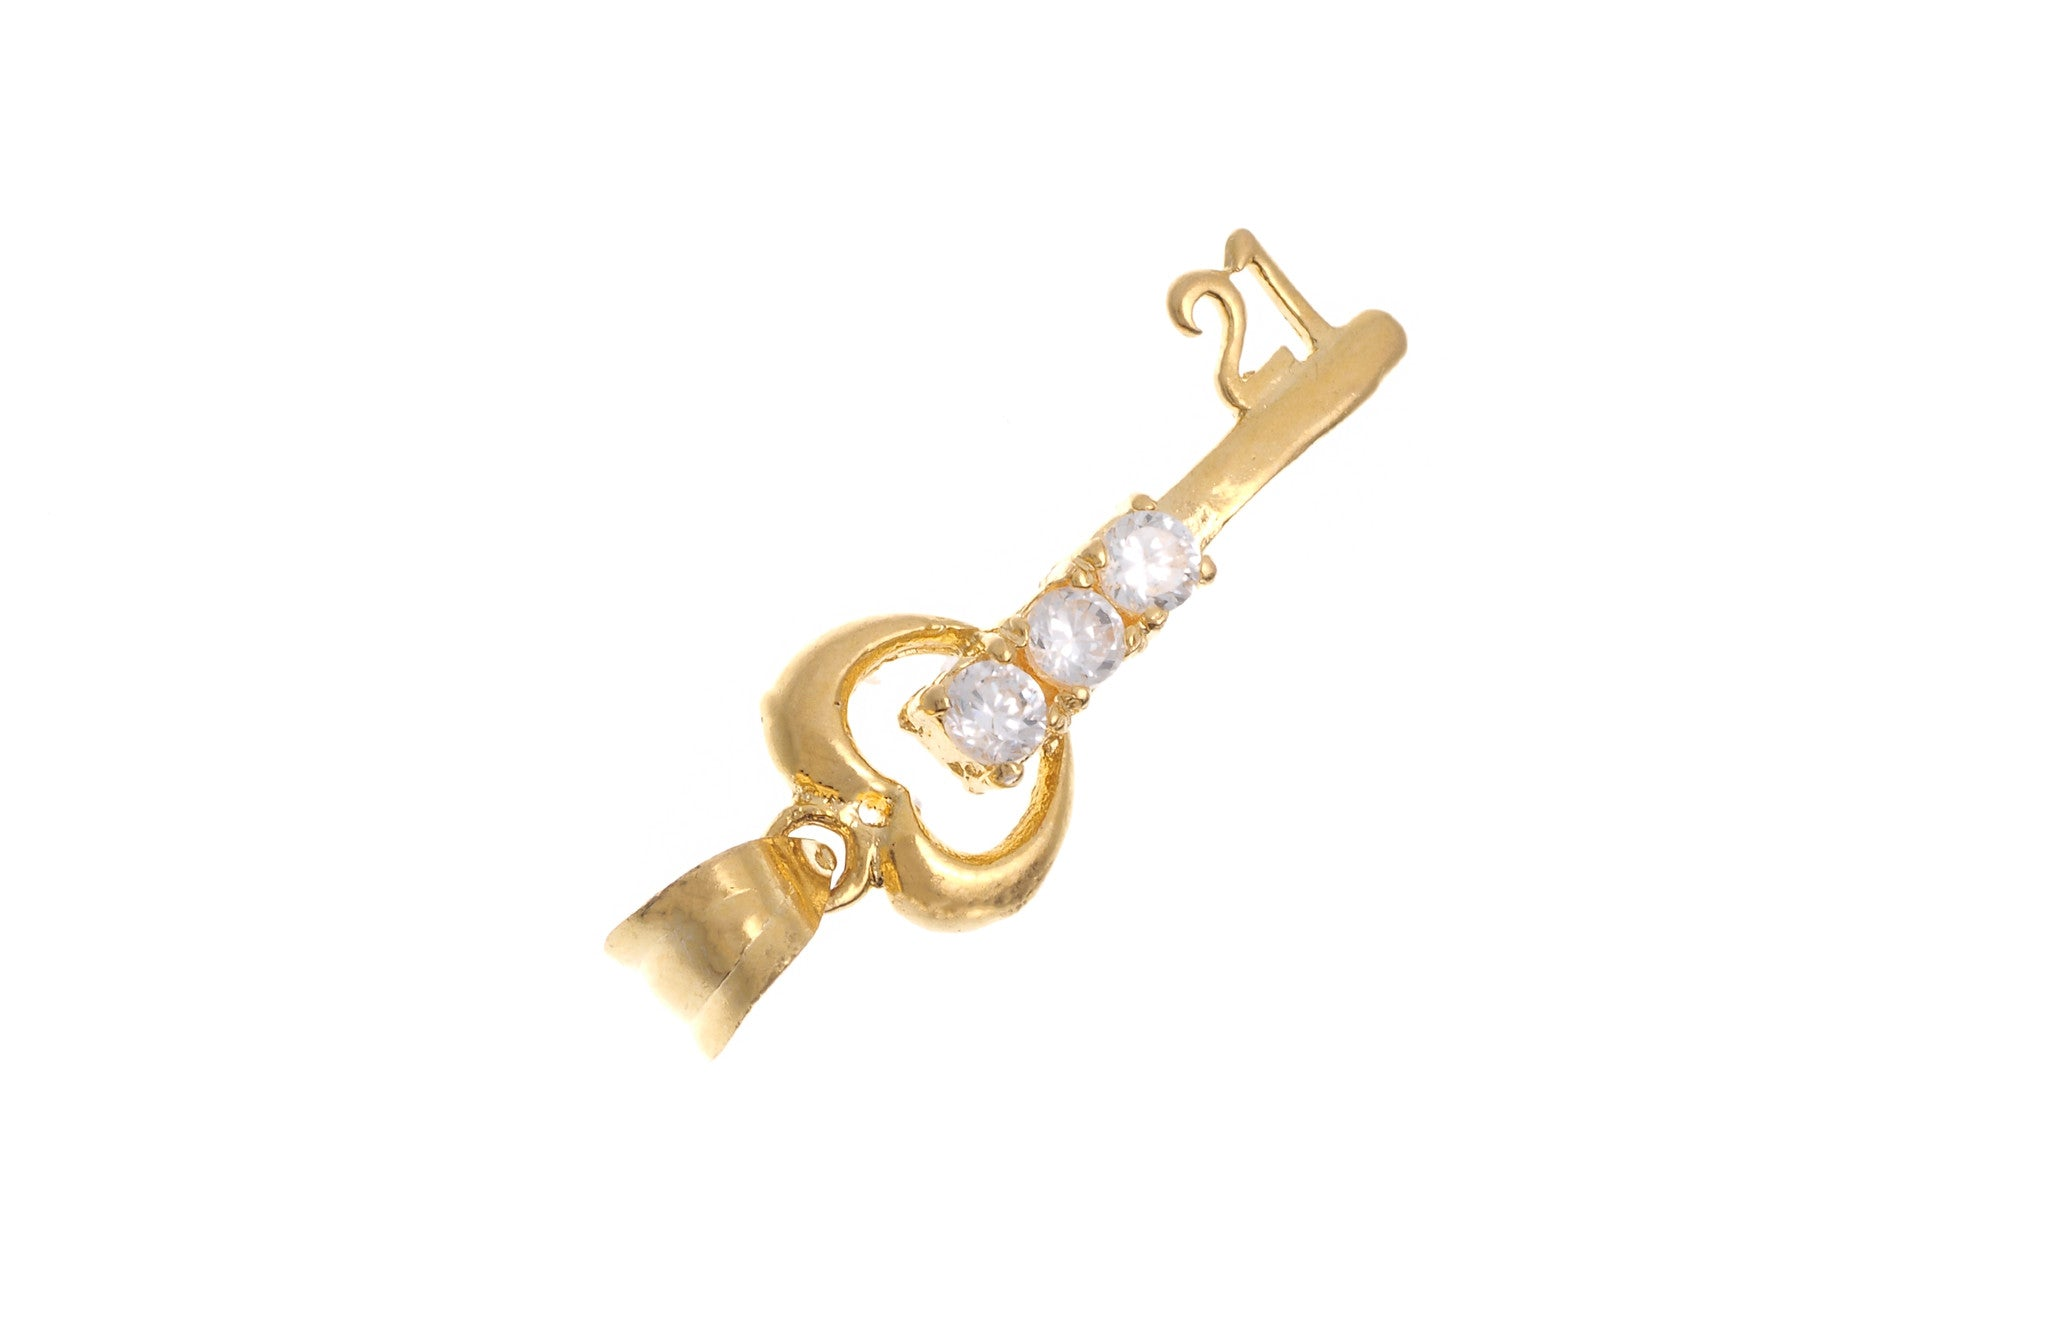 22ct Yellow Gold Cubic Zirconia '21' Key Pendant (G5346), Minar Jewellers - 1